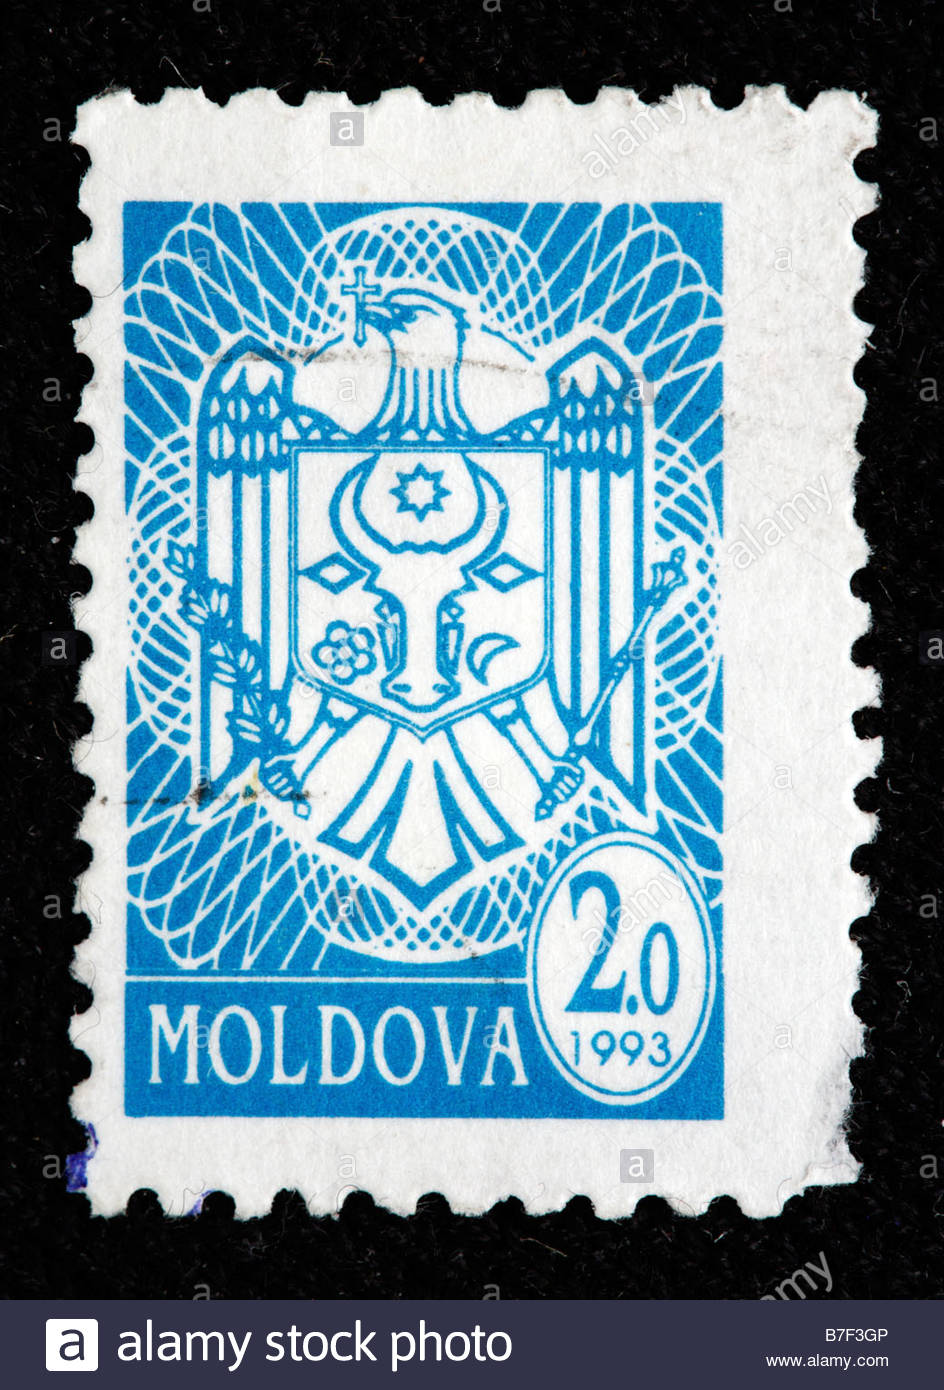 Coat of arms, postage stamp, Moldova, 1993 - Stock Image